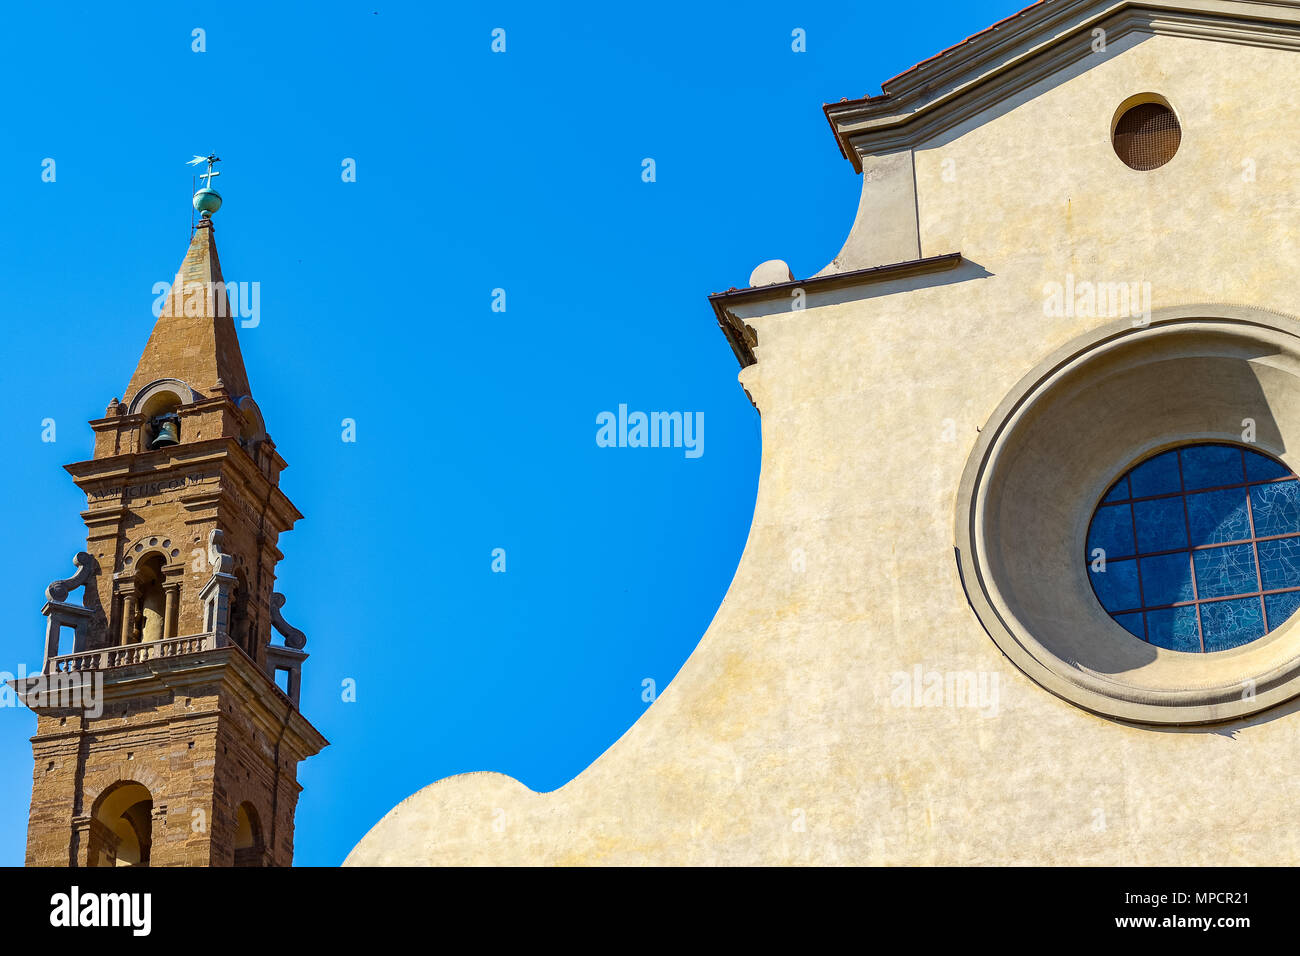 Exterior of Santo Spirito, a church located in the Oltrarno quarter in Florence, Italy - Stock Image